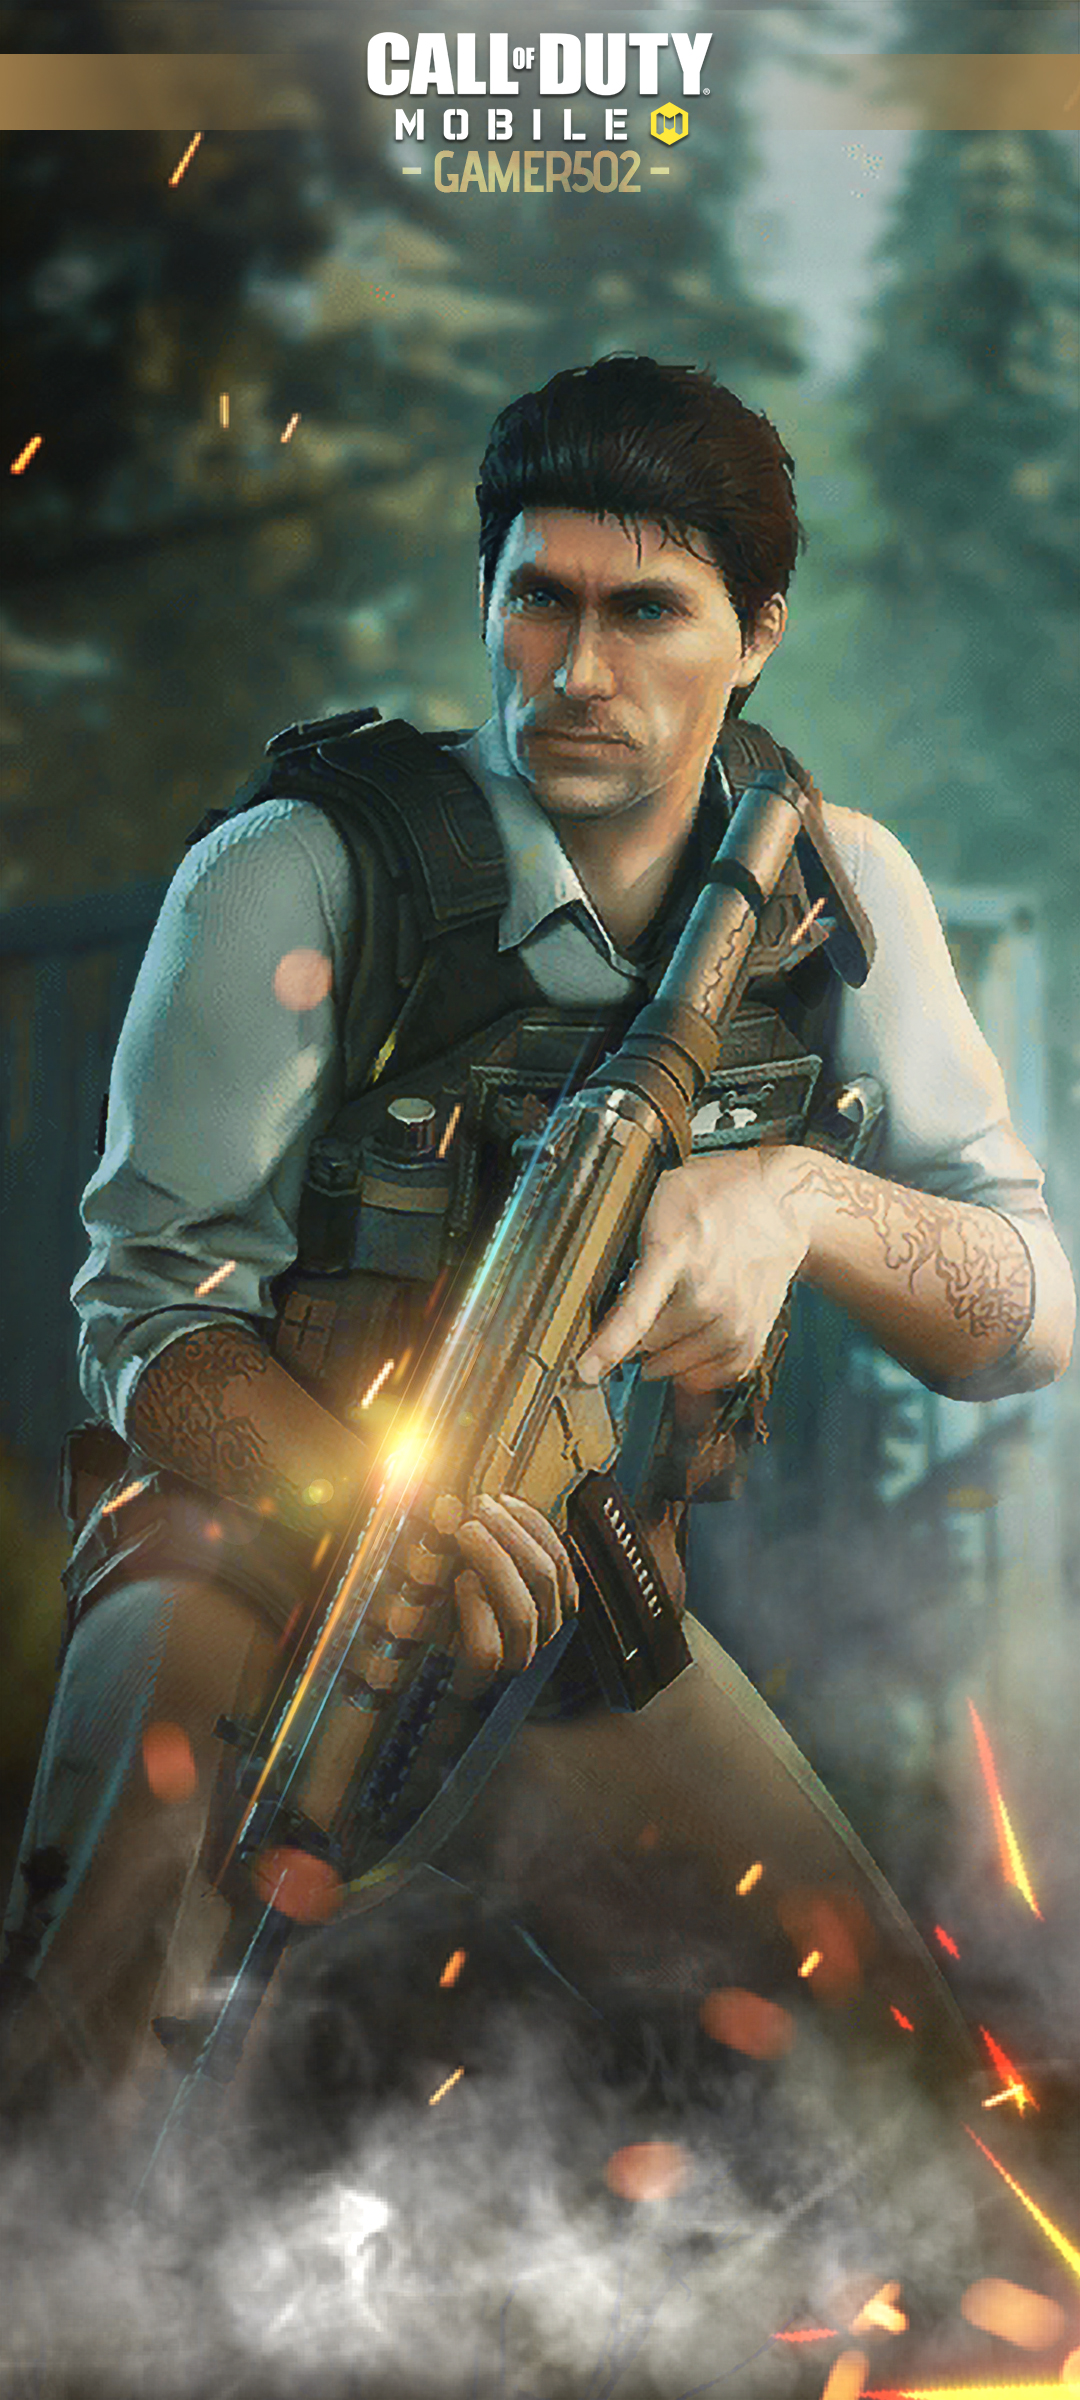 Call of Duty Mobile Wallpaper Makarov